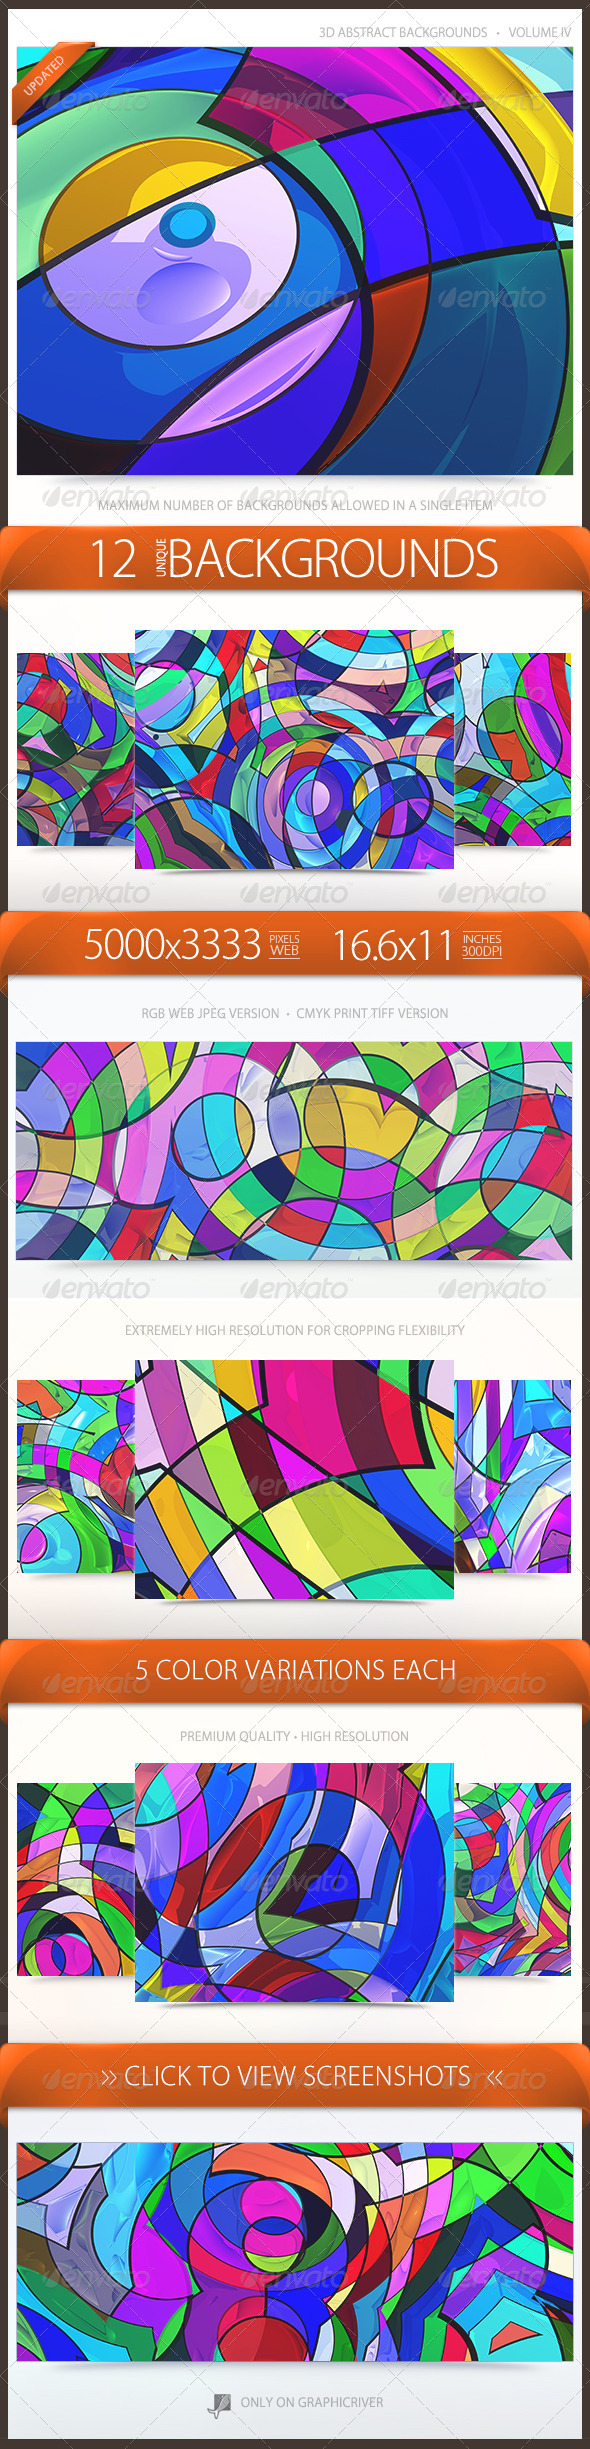 3D Abstract / Stained Glass Backgrounds Volume 4 - Abstract Backgrounds